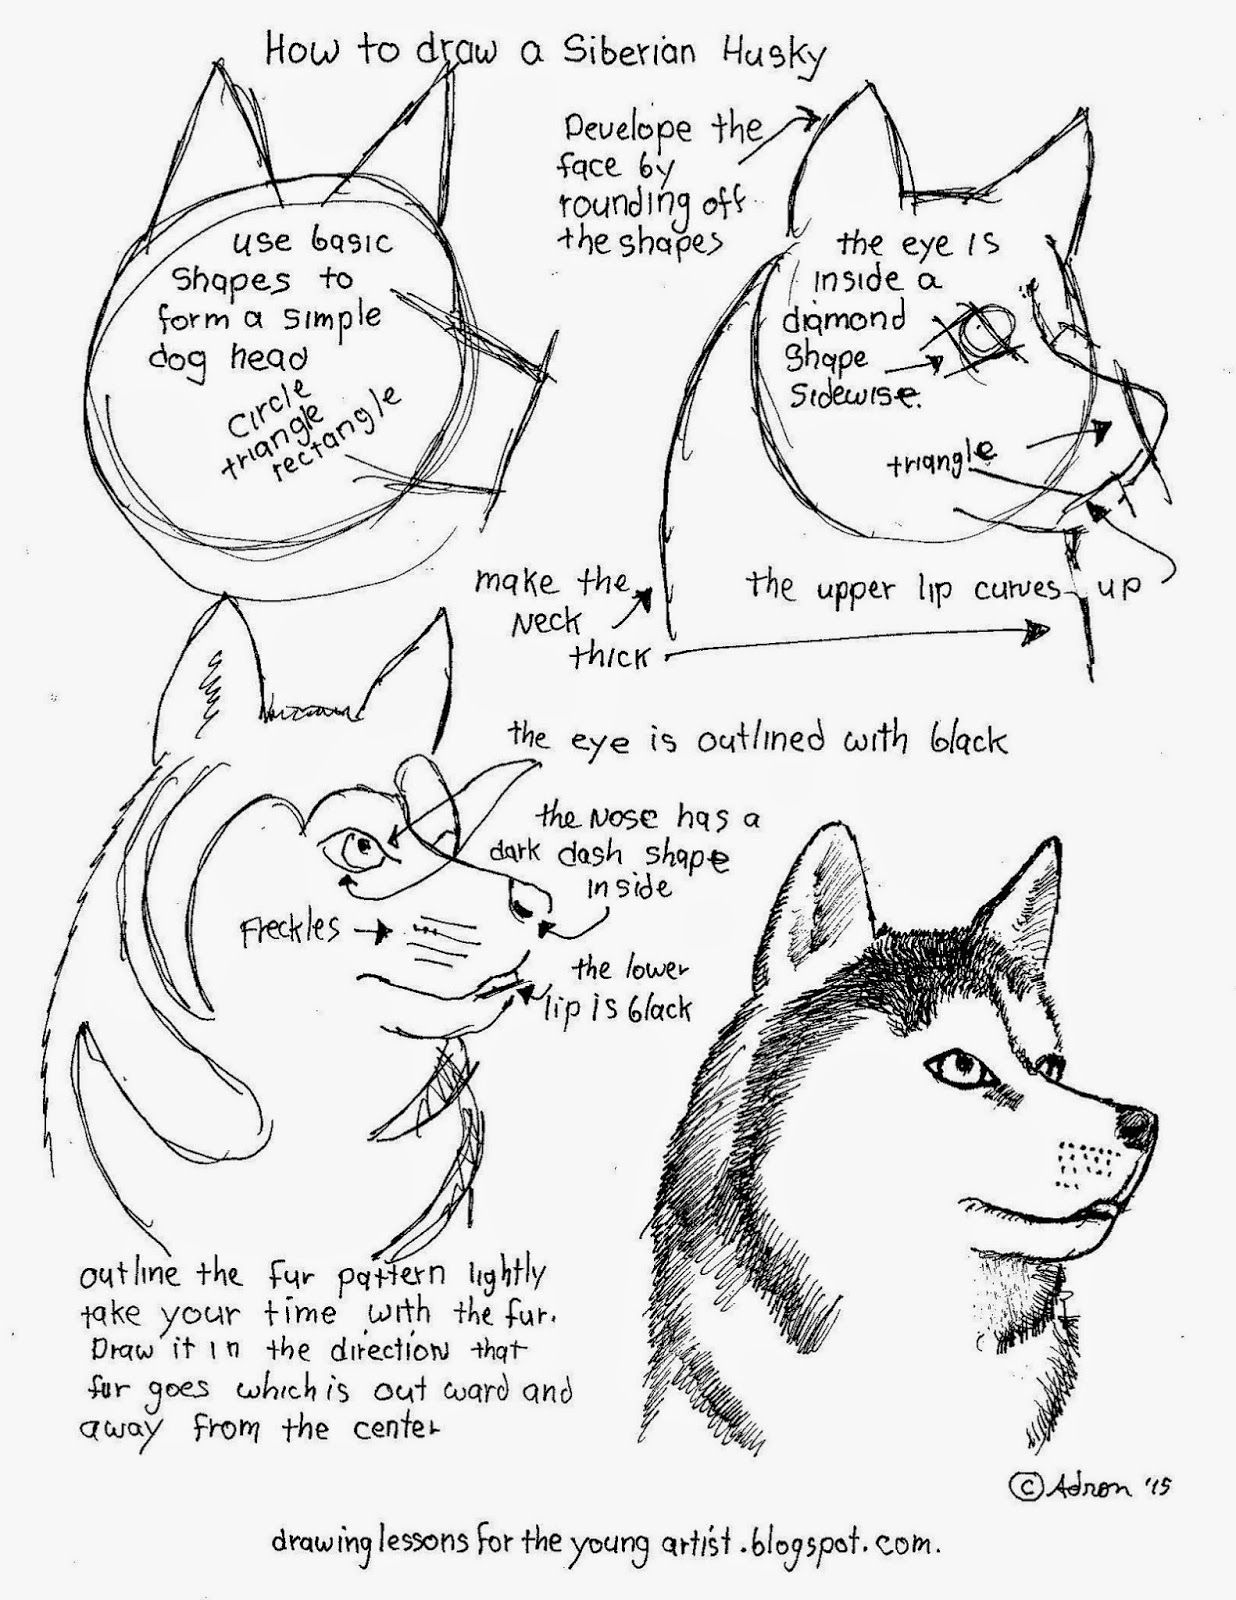 How To Draw A Siberian Husky Free Printable Worksheet How To Draw Worksheets For Young Artist